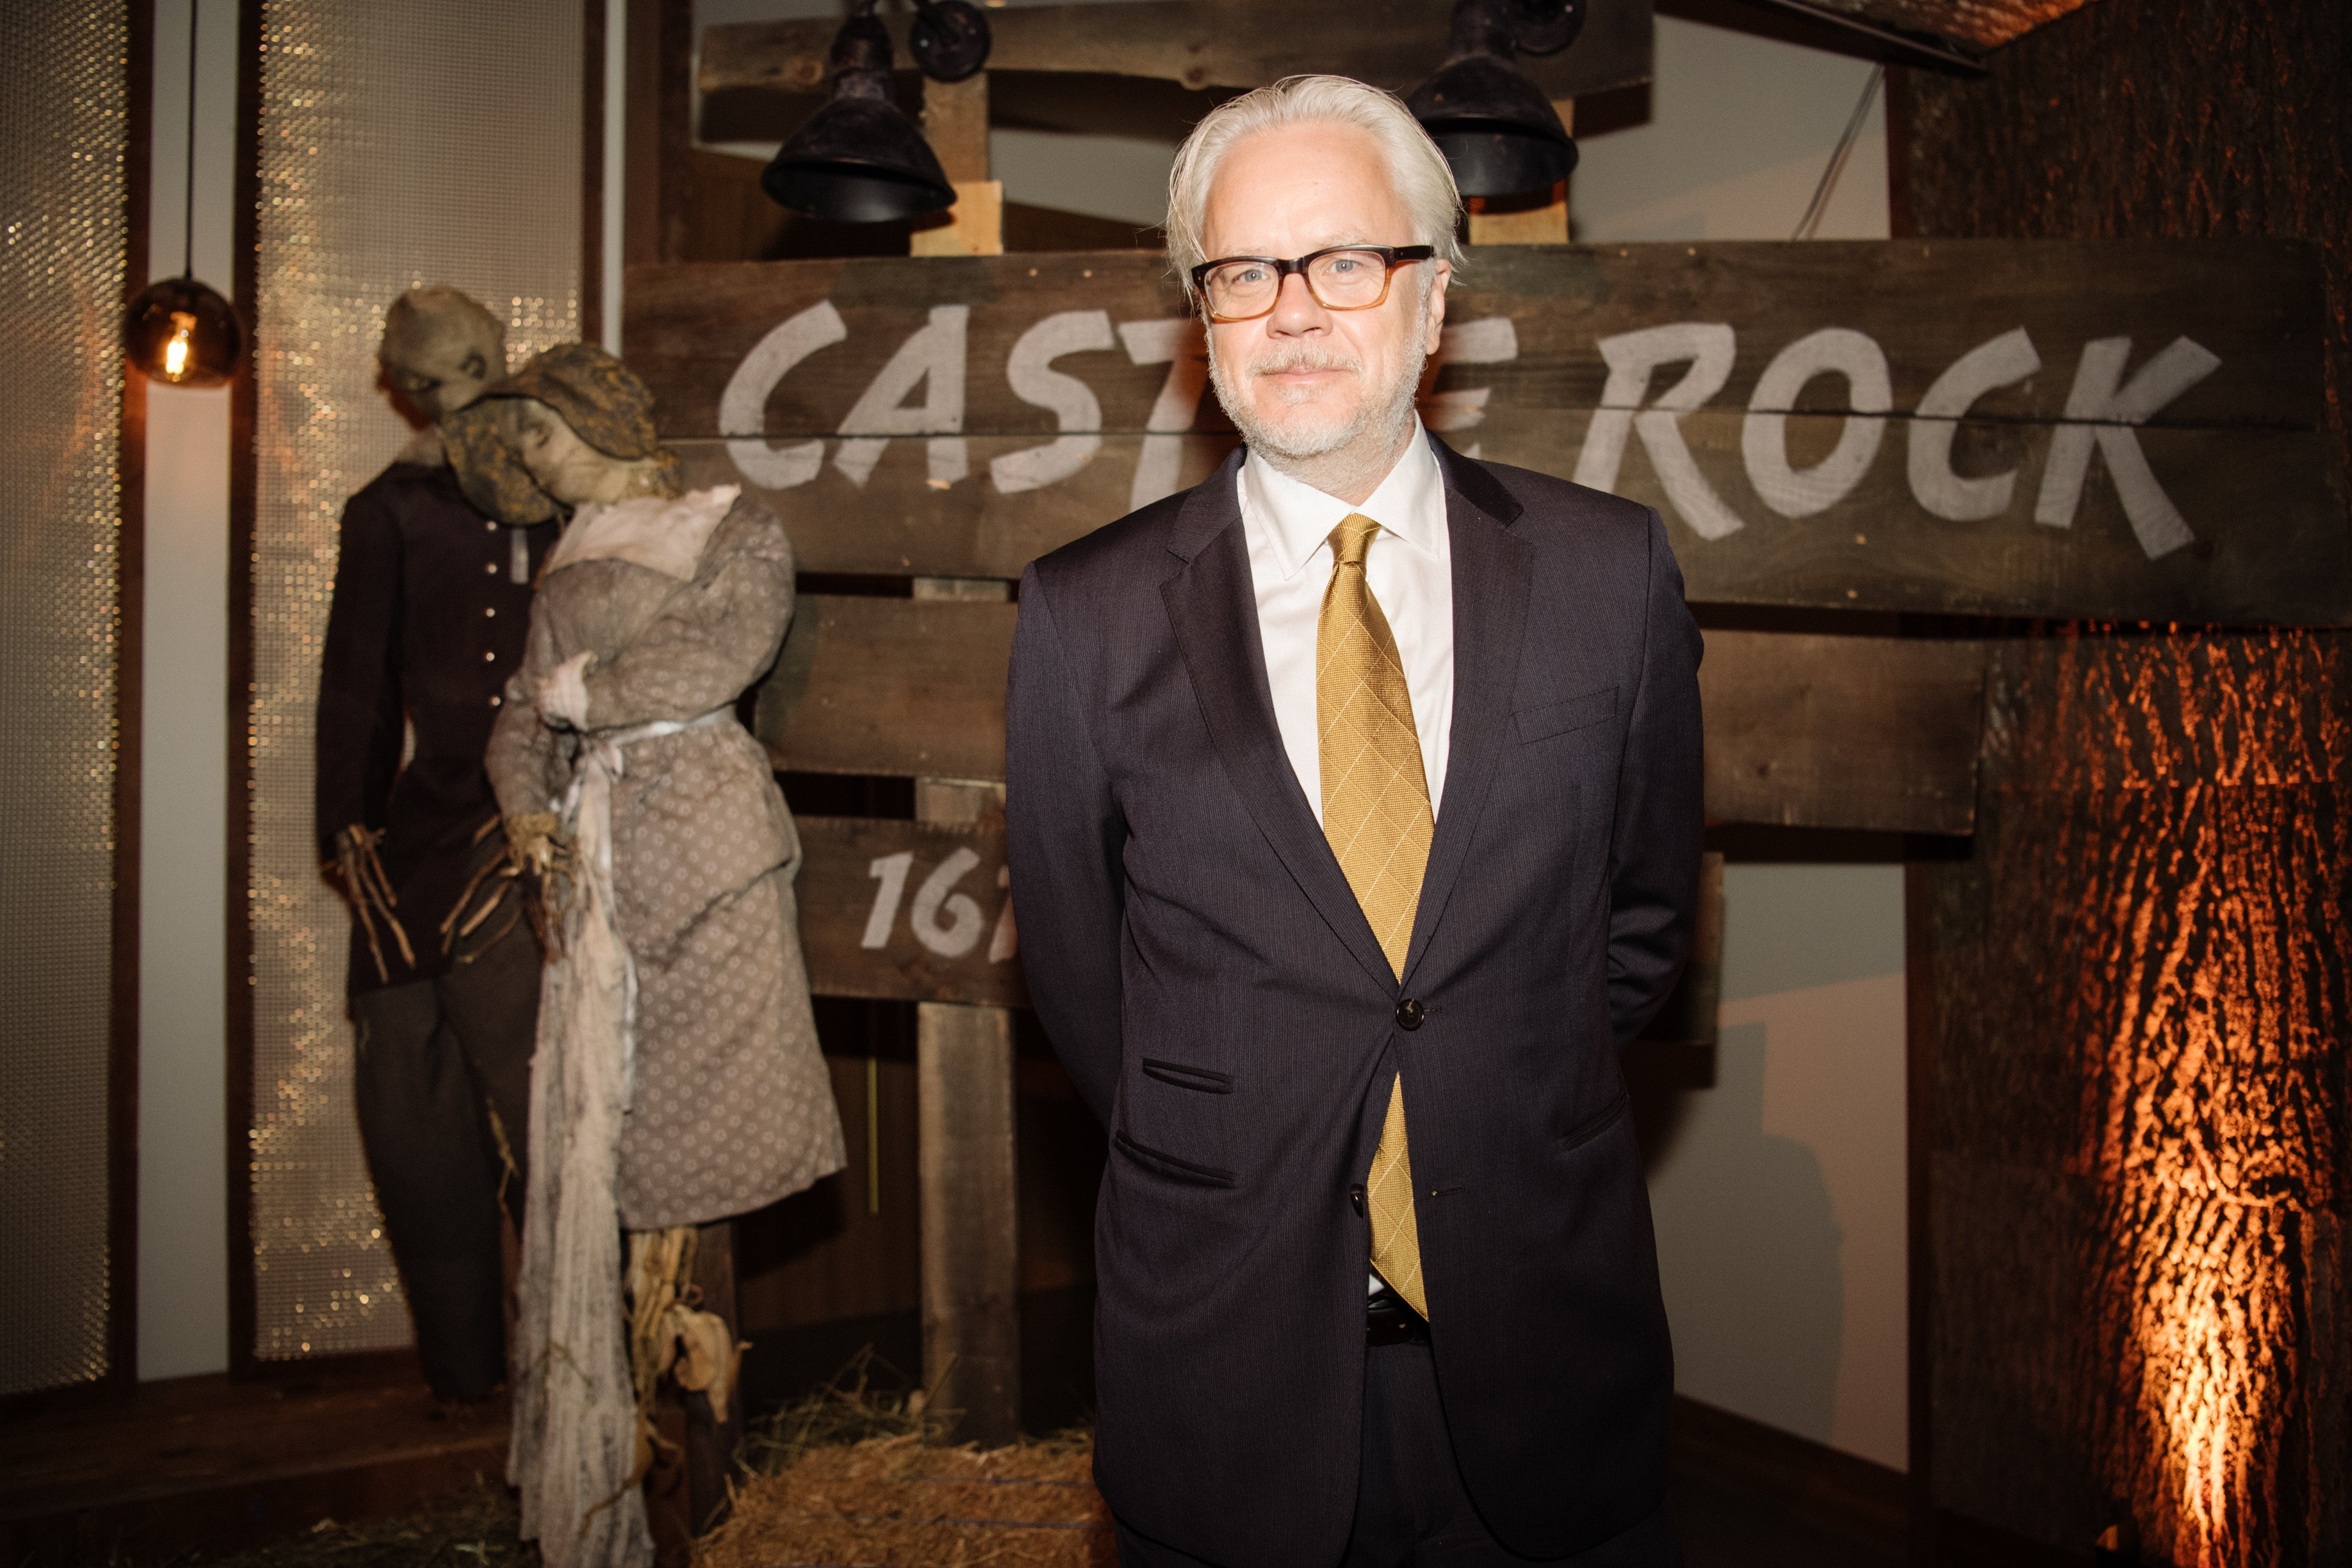 """Tim Robbins at the premiere of """"Castle Rock"""" in Los Angeles, October, 2019.   Photo: Getty Images."""